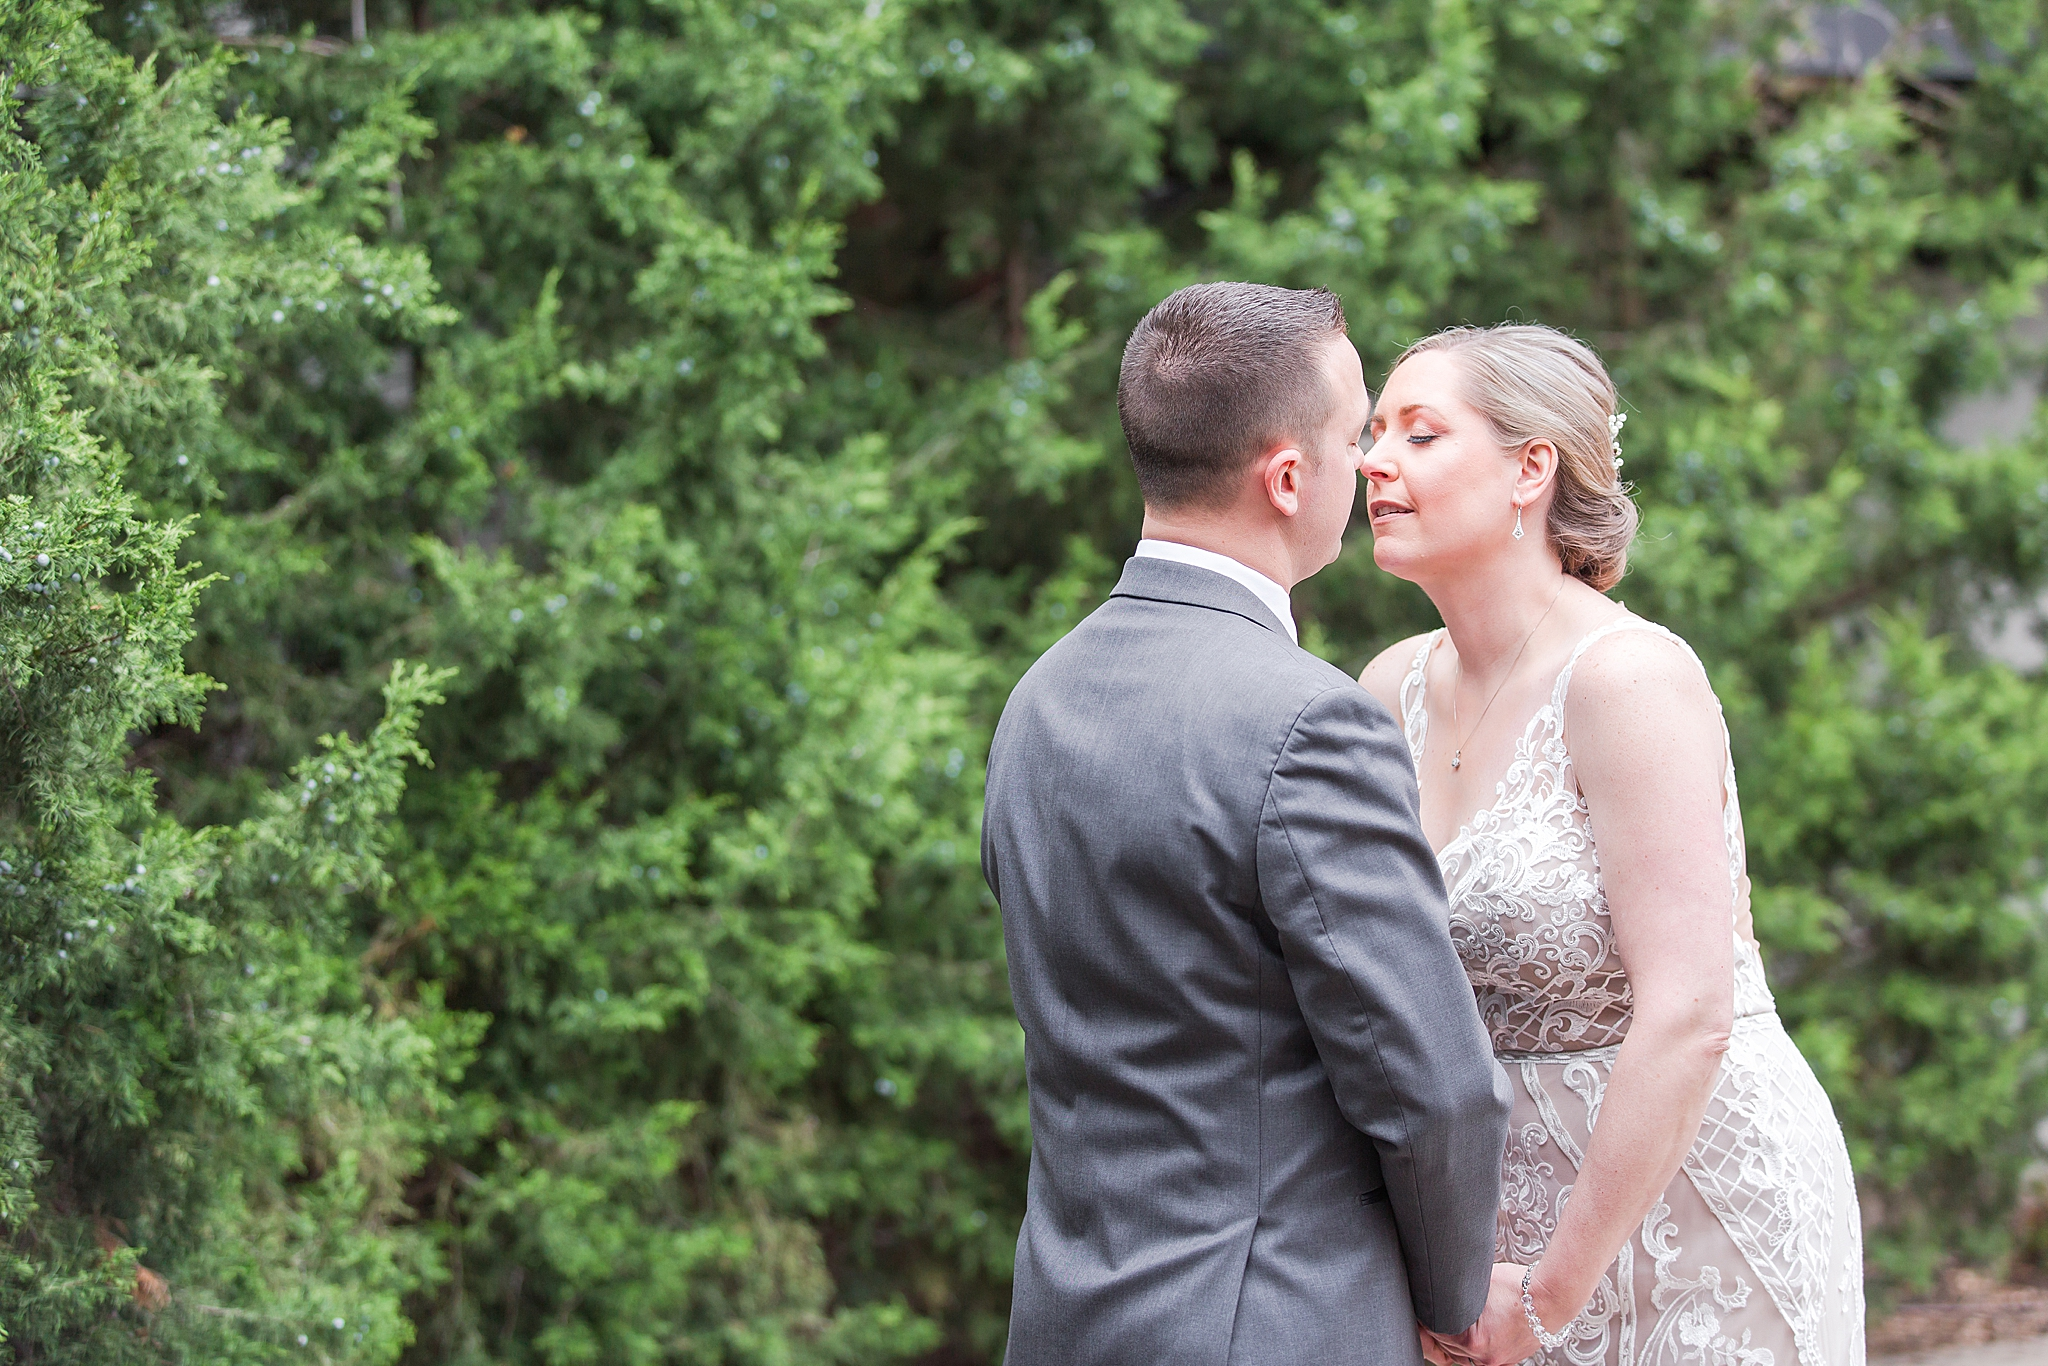 modern-romantic-wedding-photography-at-webers-in-ann-arbor-michigan-by-courtney-carolyn-photography_0023.jpg